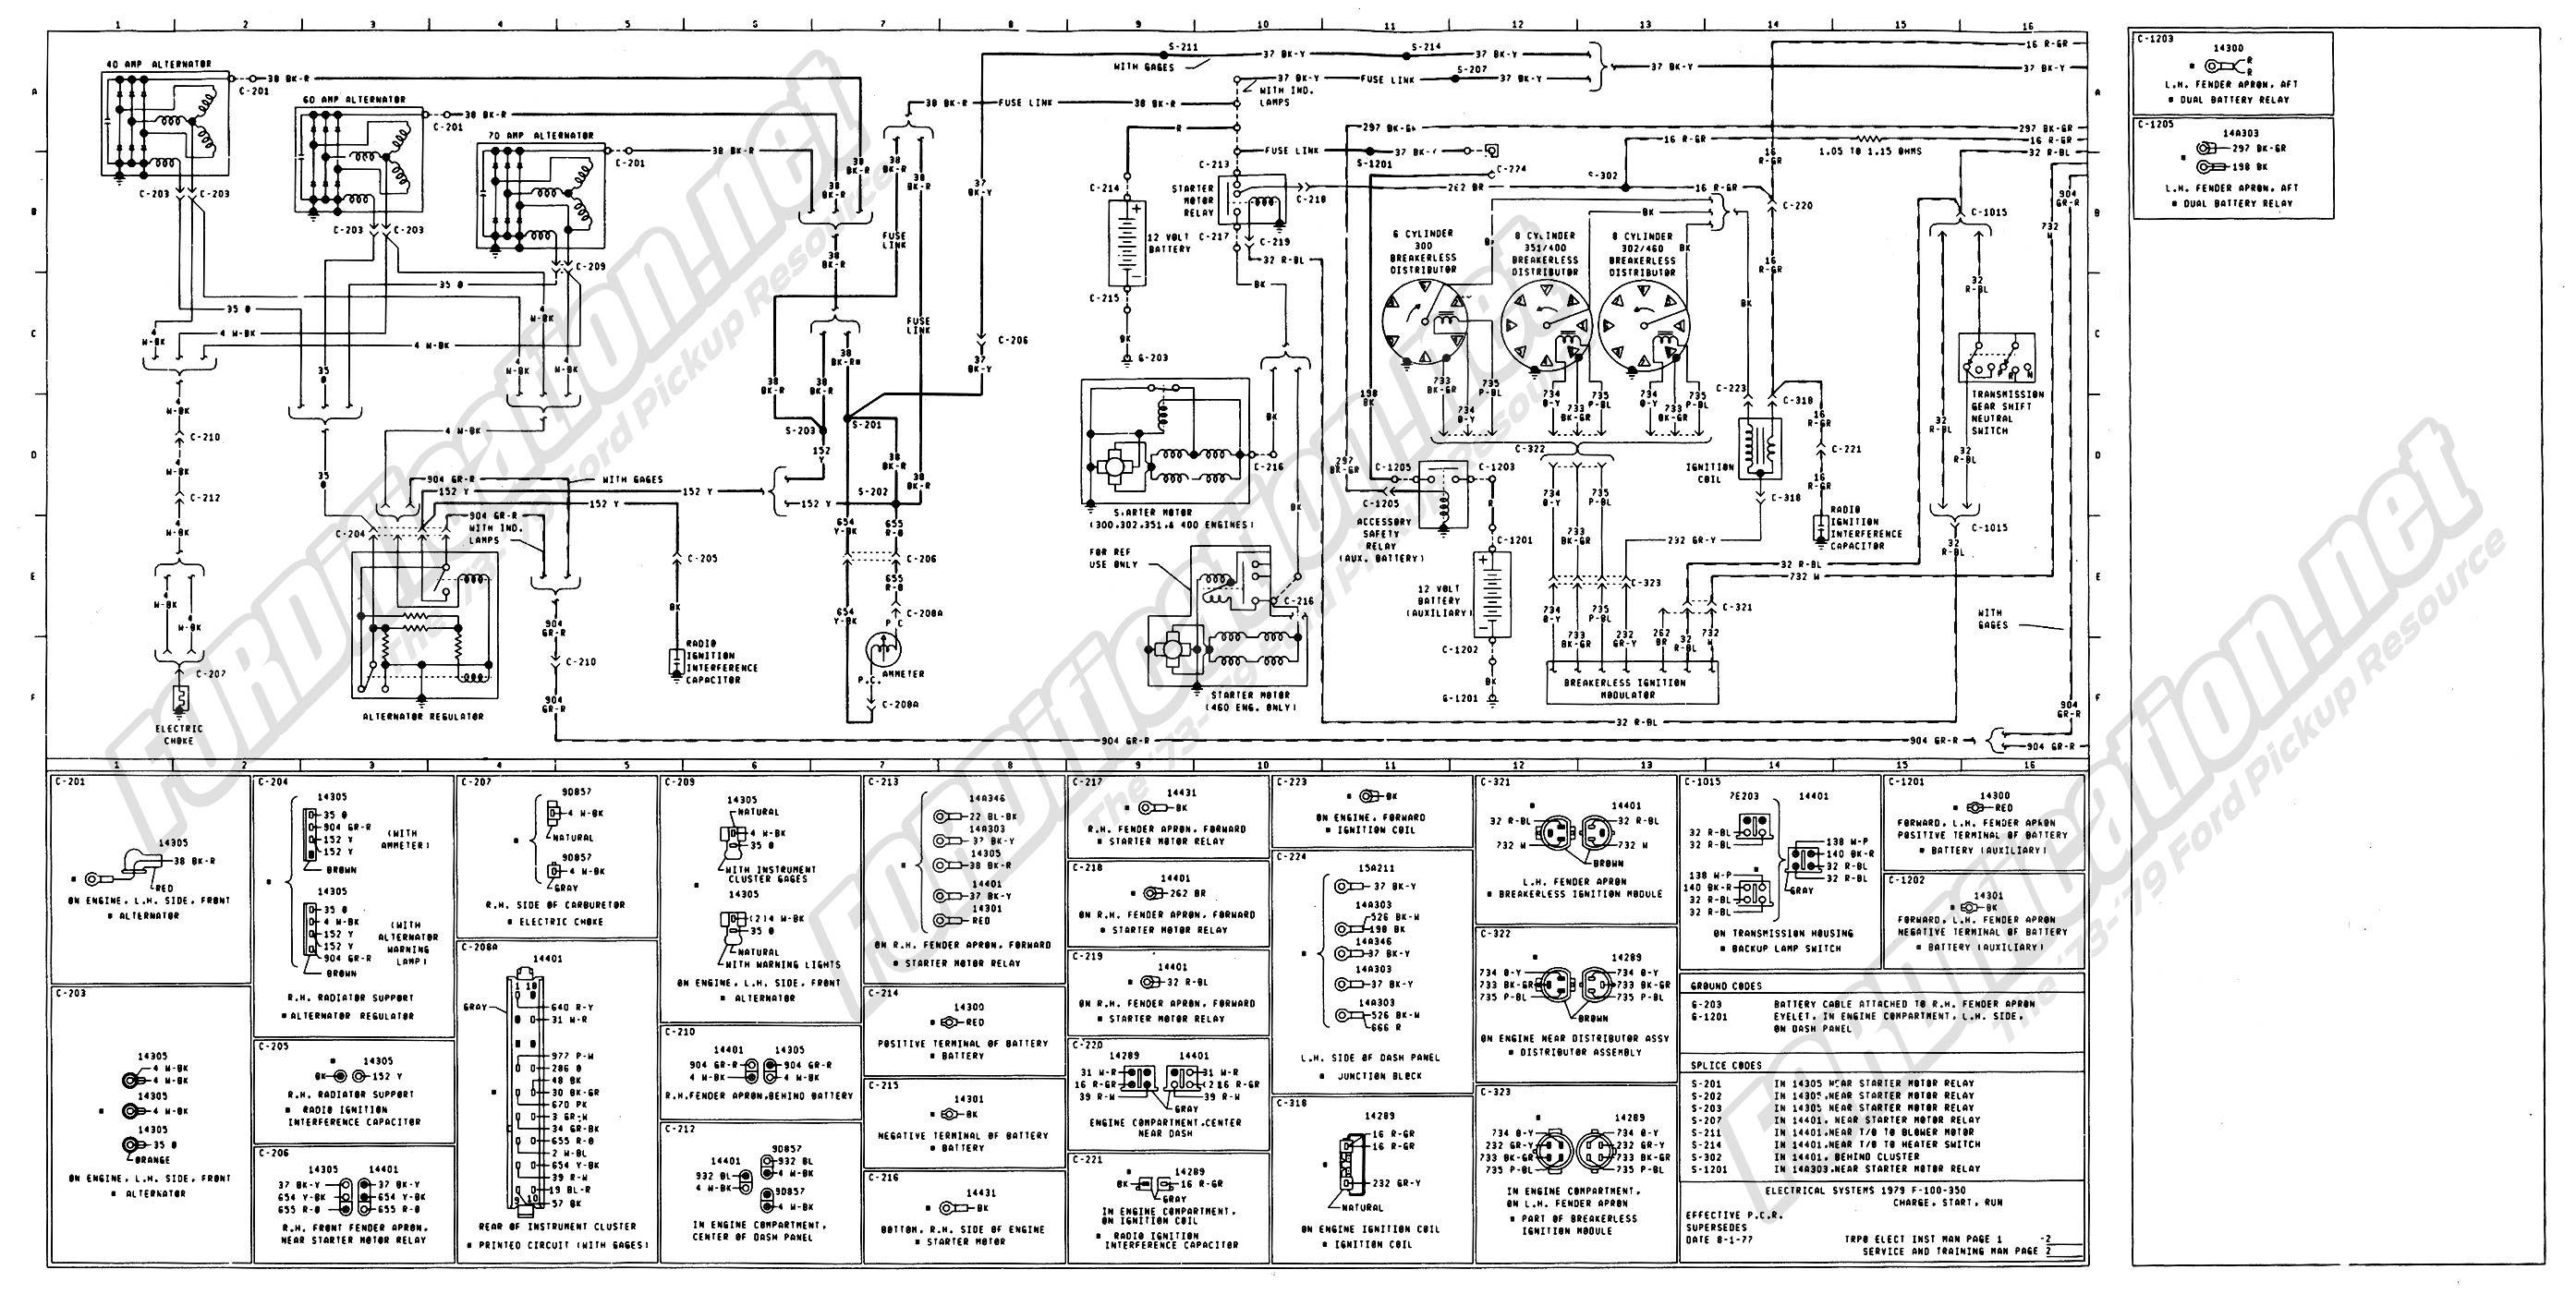 1973 1979 Ford Truck Wiring Diagrams & Schematics Fordification Net 1996  Ford F-150 Wiring Diagram 1975 Ford Wiring Diagram